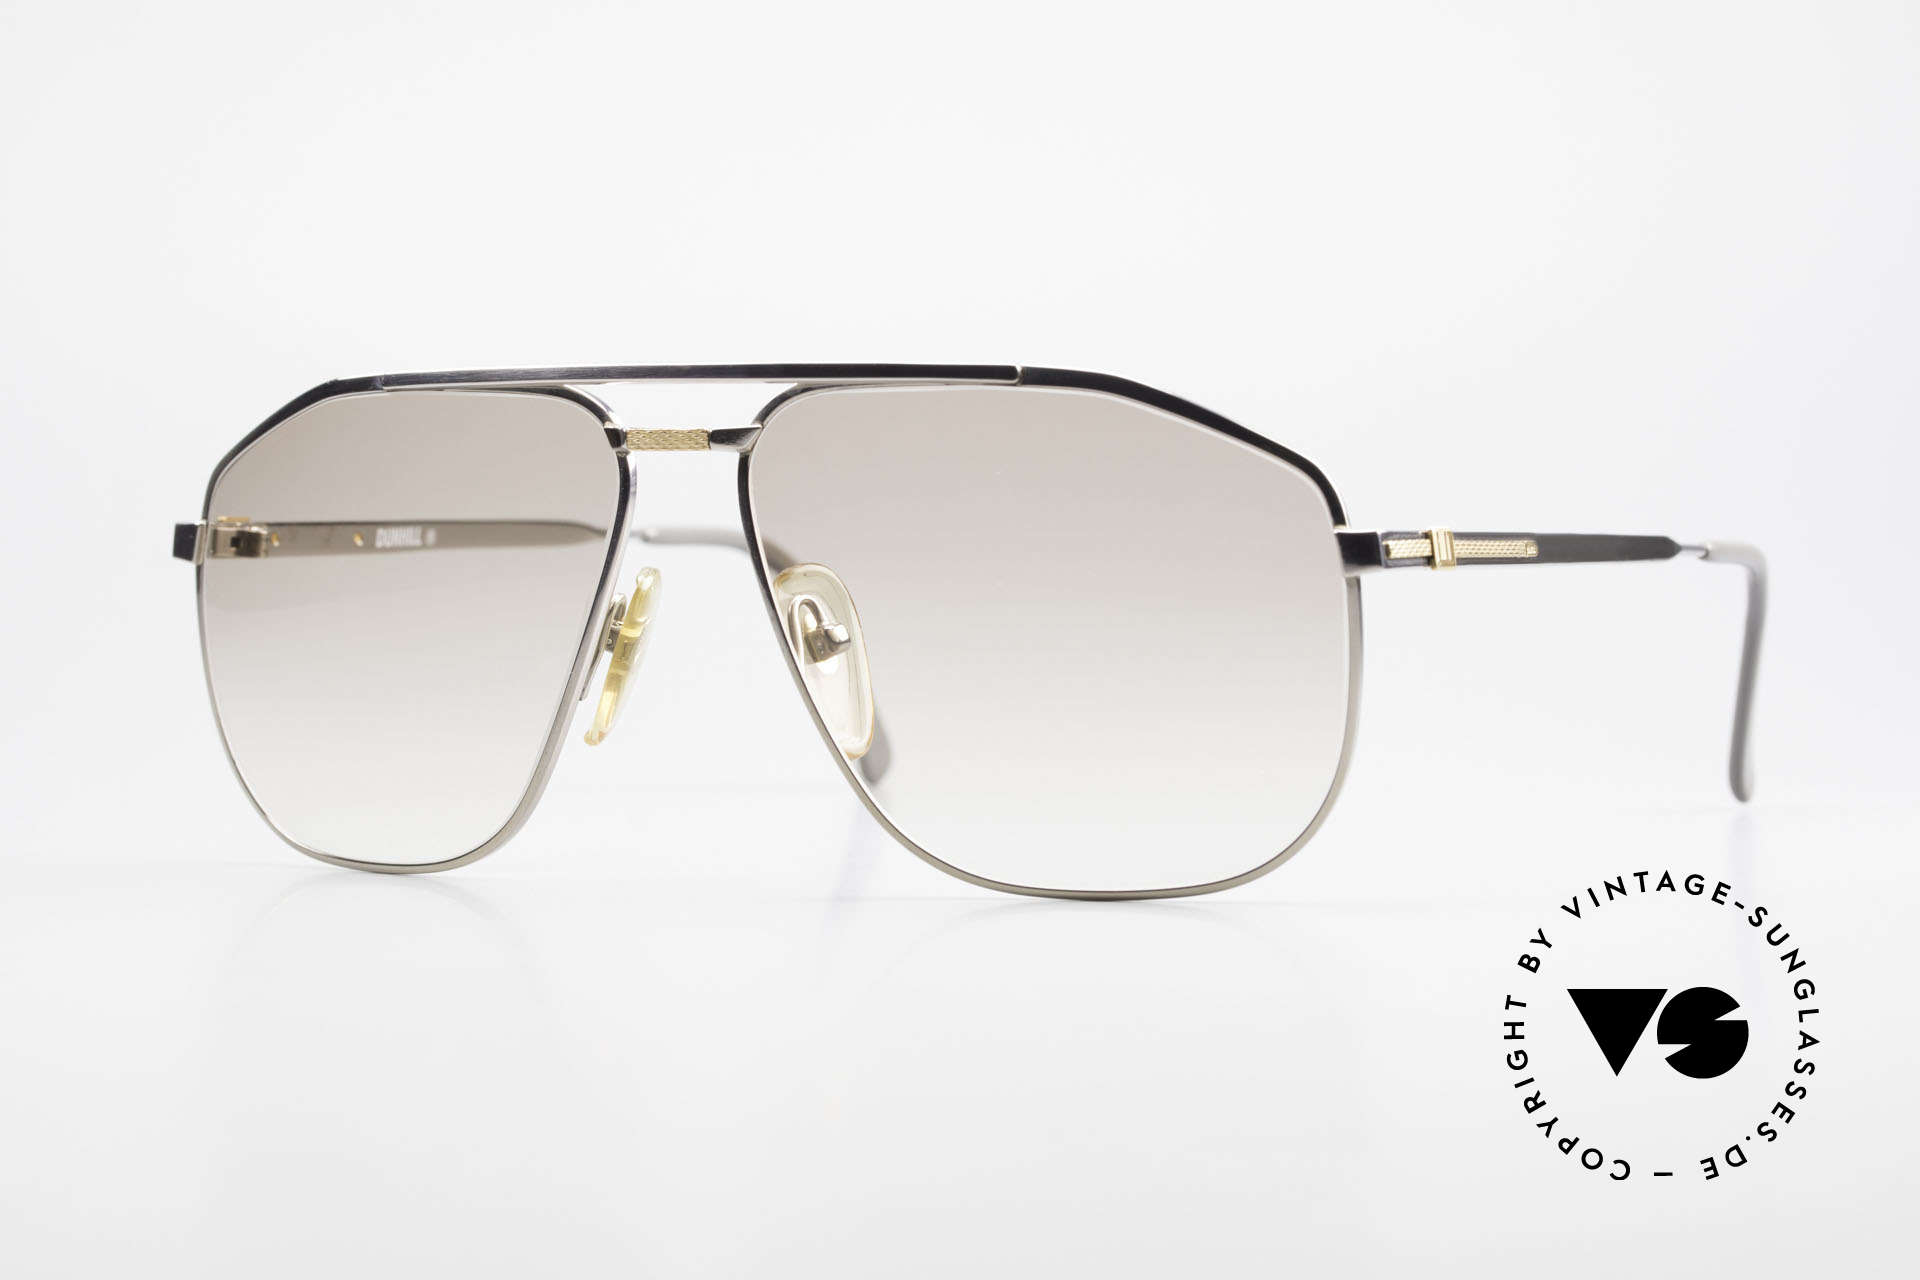 Dunhill 6096 Titanium Frame 18ct Solid Gold, pure elegance in design & coloring - you must feel this!, Made for Men